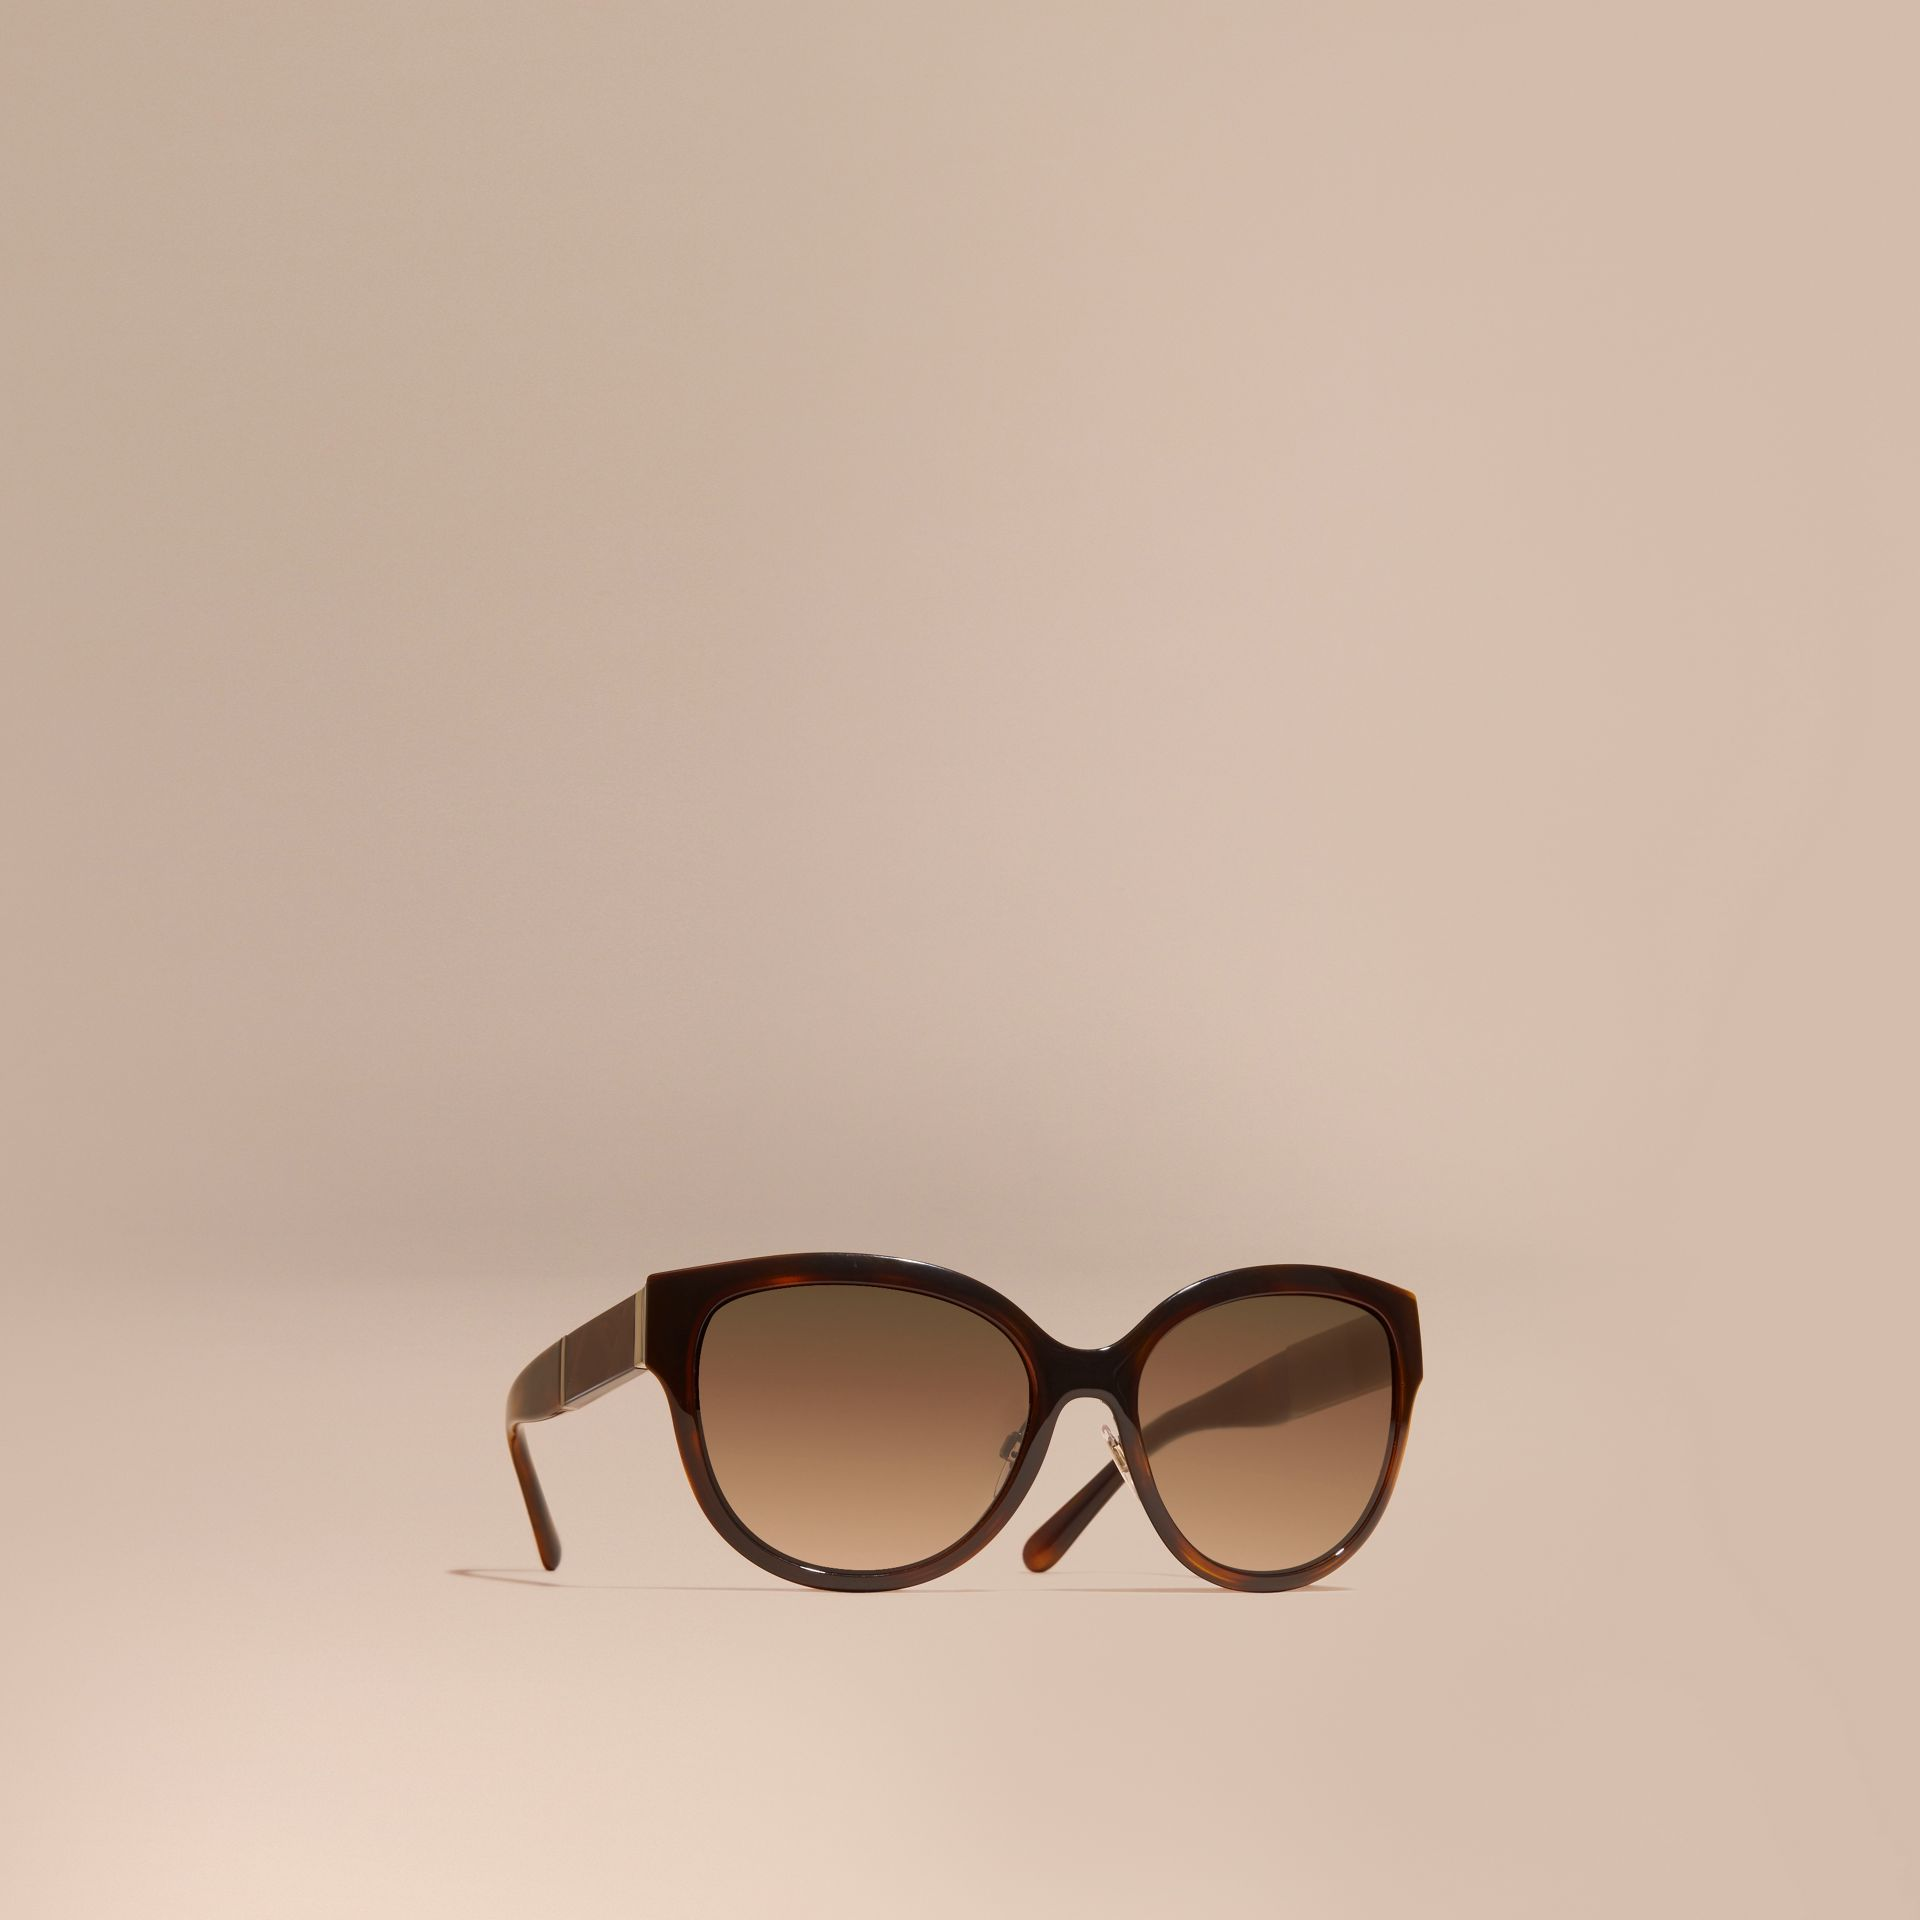 Light russet brown Check Detail Round Cat-eye Sunglasses Light Russet Brown - gallery image 1